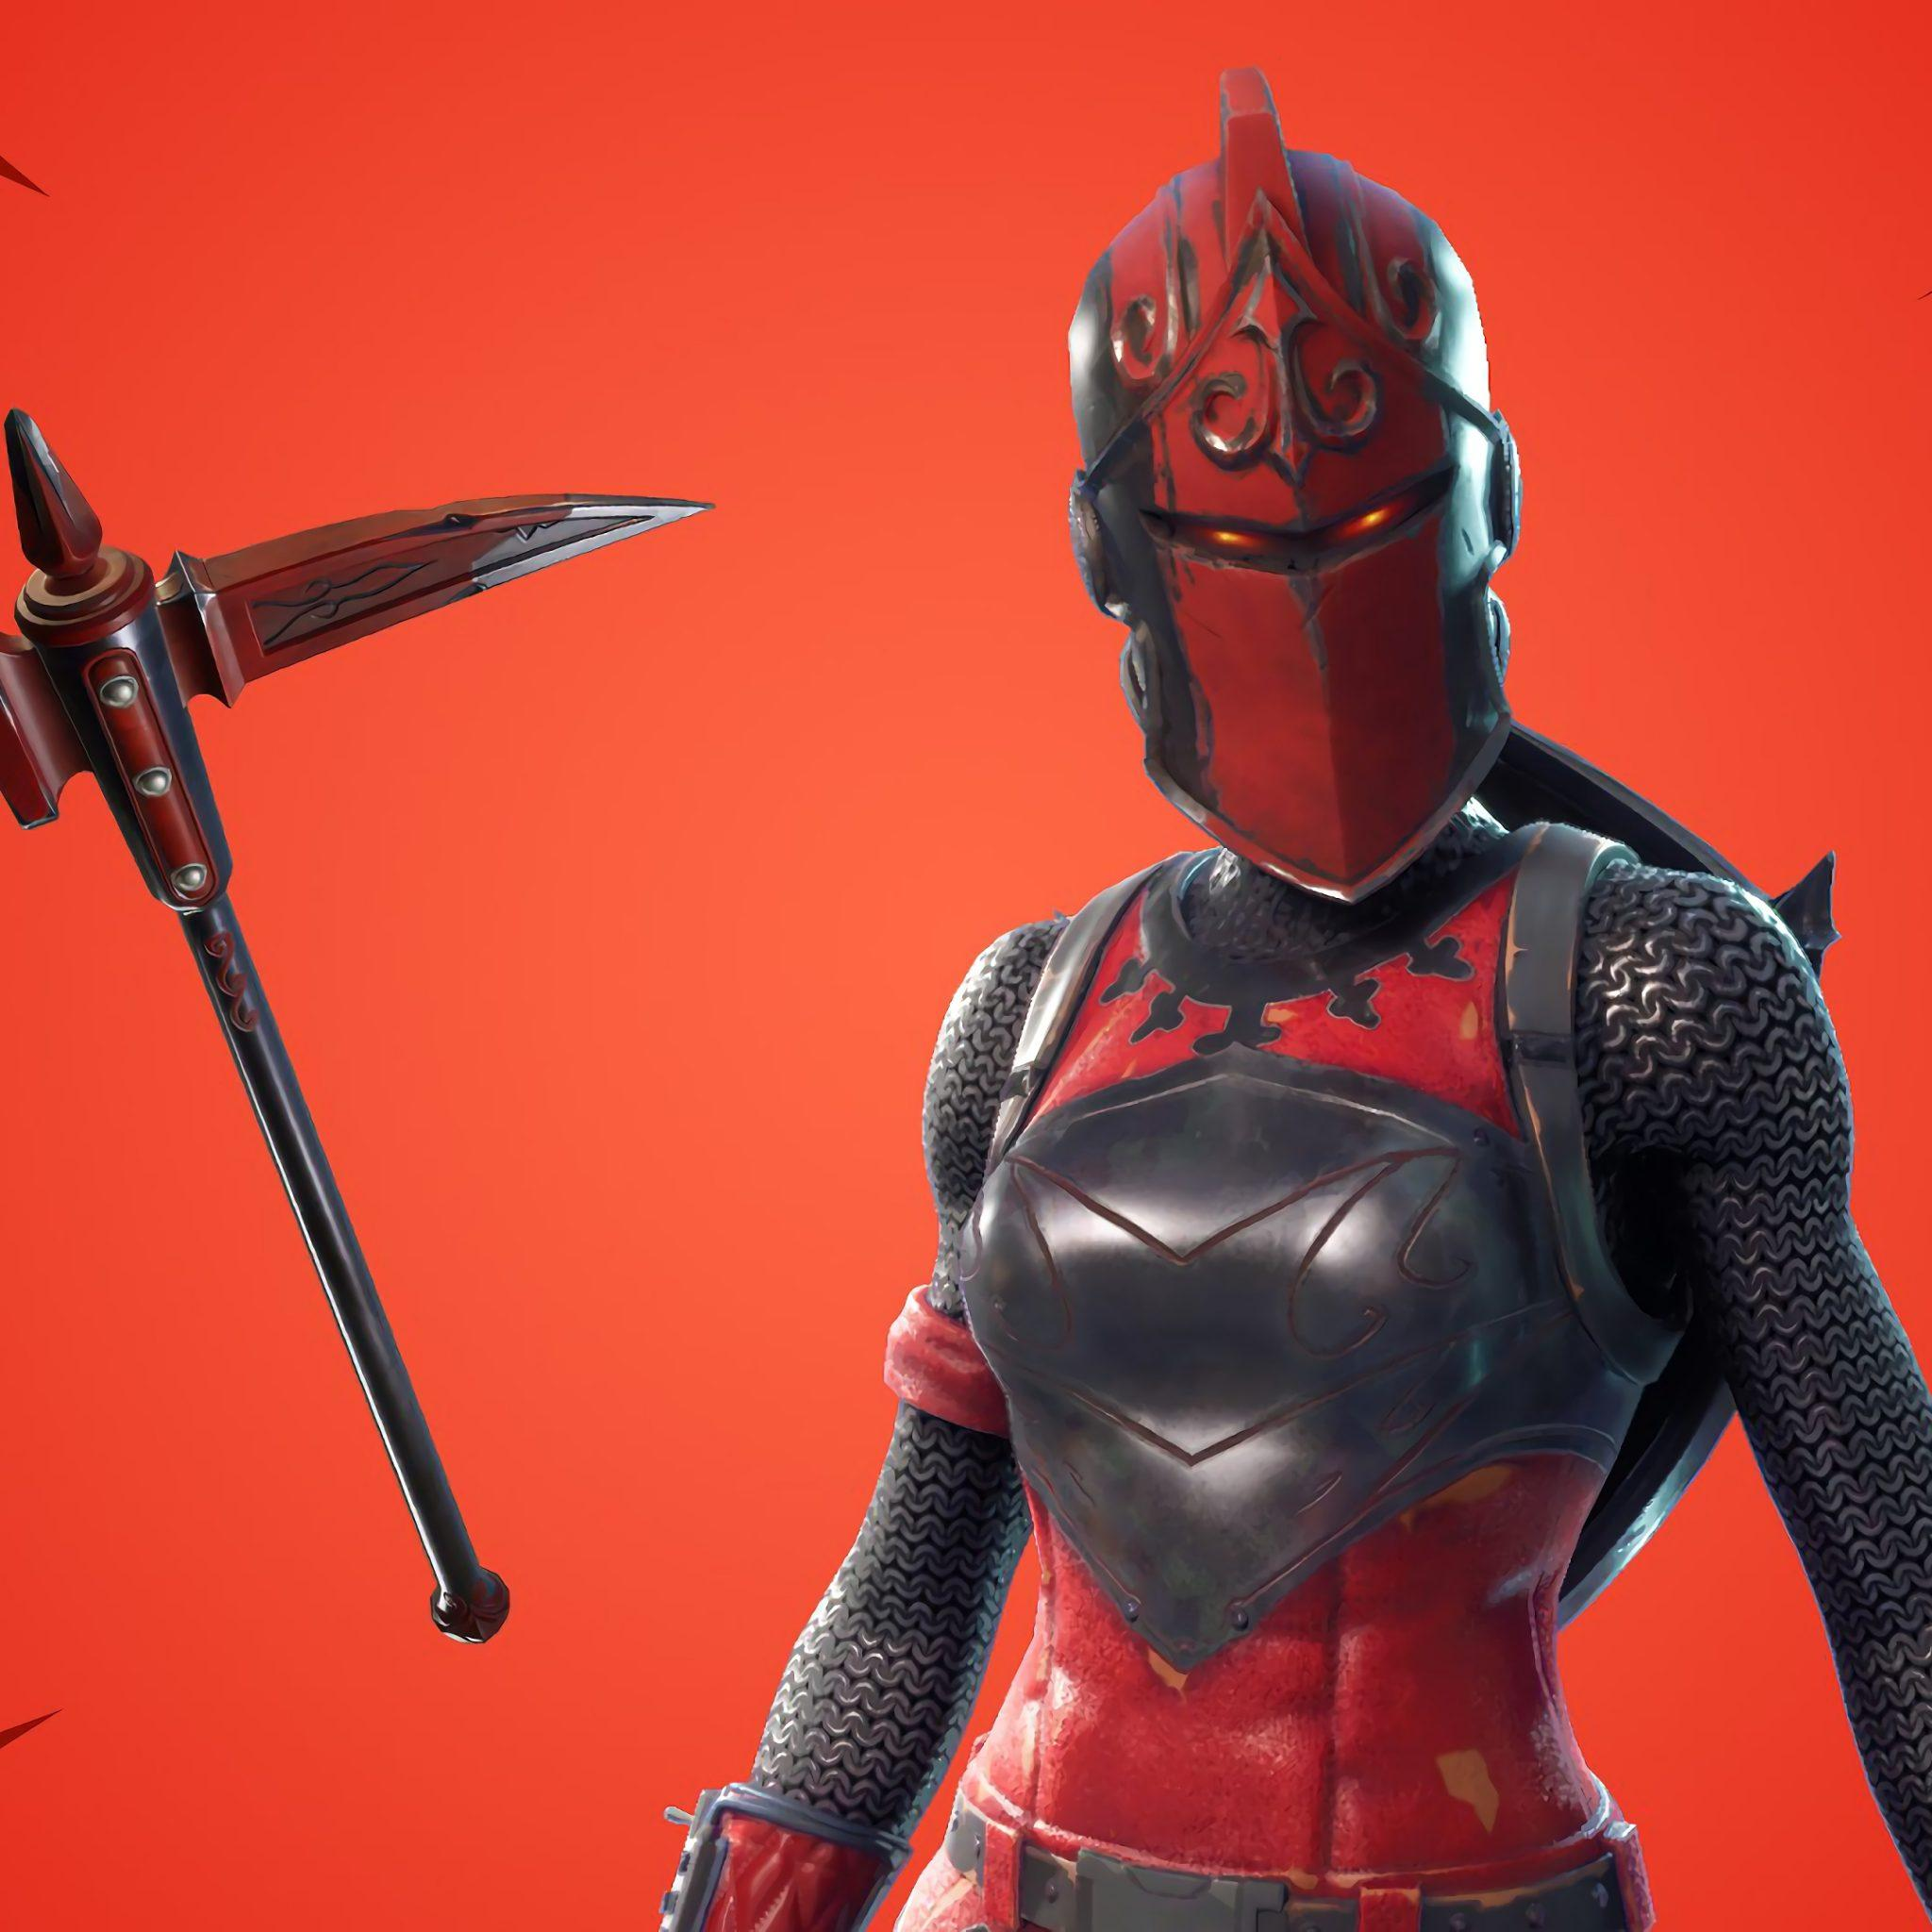 Official Wallpaper Of Red Knight From Fortnite Game | PaperPull